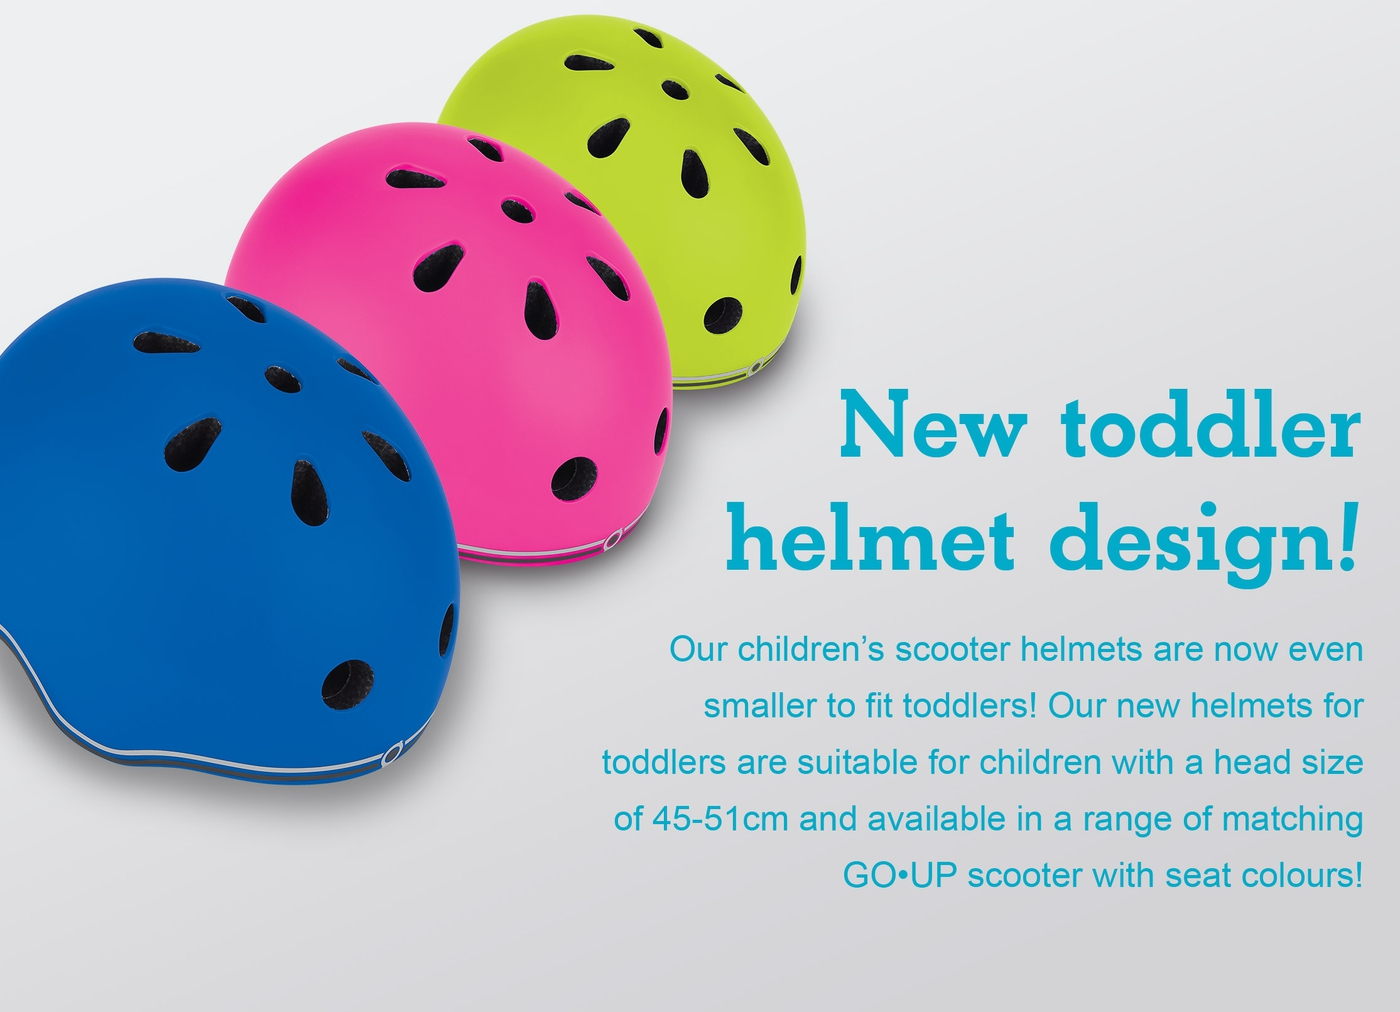 New toddler helmet design! Our children's scooter helmets are now even smaller to fit toddlers! Our new helmets for toddlers are suitable for children with a head size of 45-51cm and available in a range of matching GO•UP scooter with seat colours!